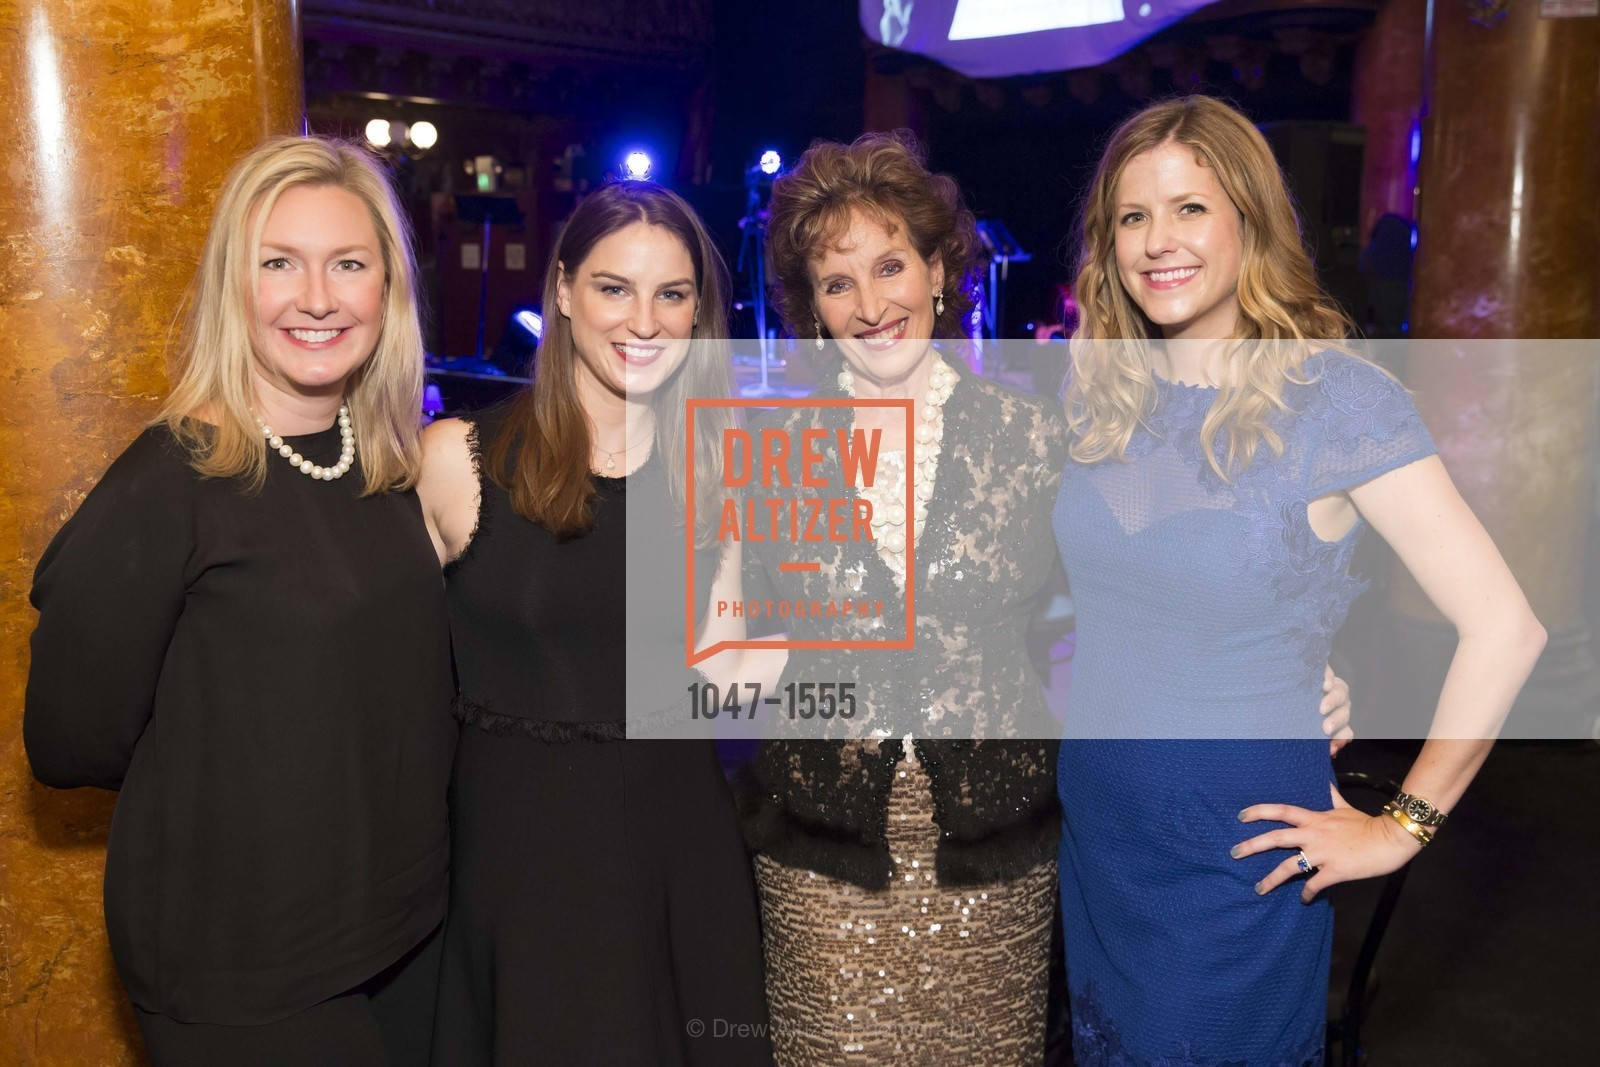 Kelsey Phelps Finch, Kathryn Duryea, Andrea Marcovicci, Lily Bowles Leo, Photo #1047-1555